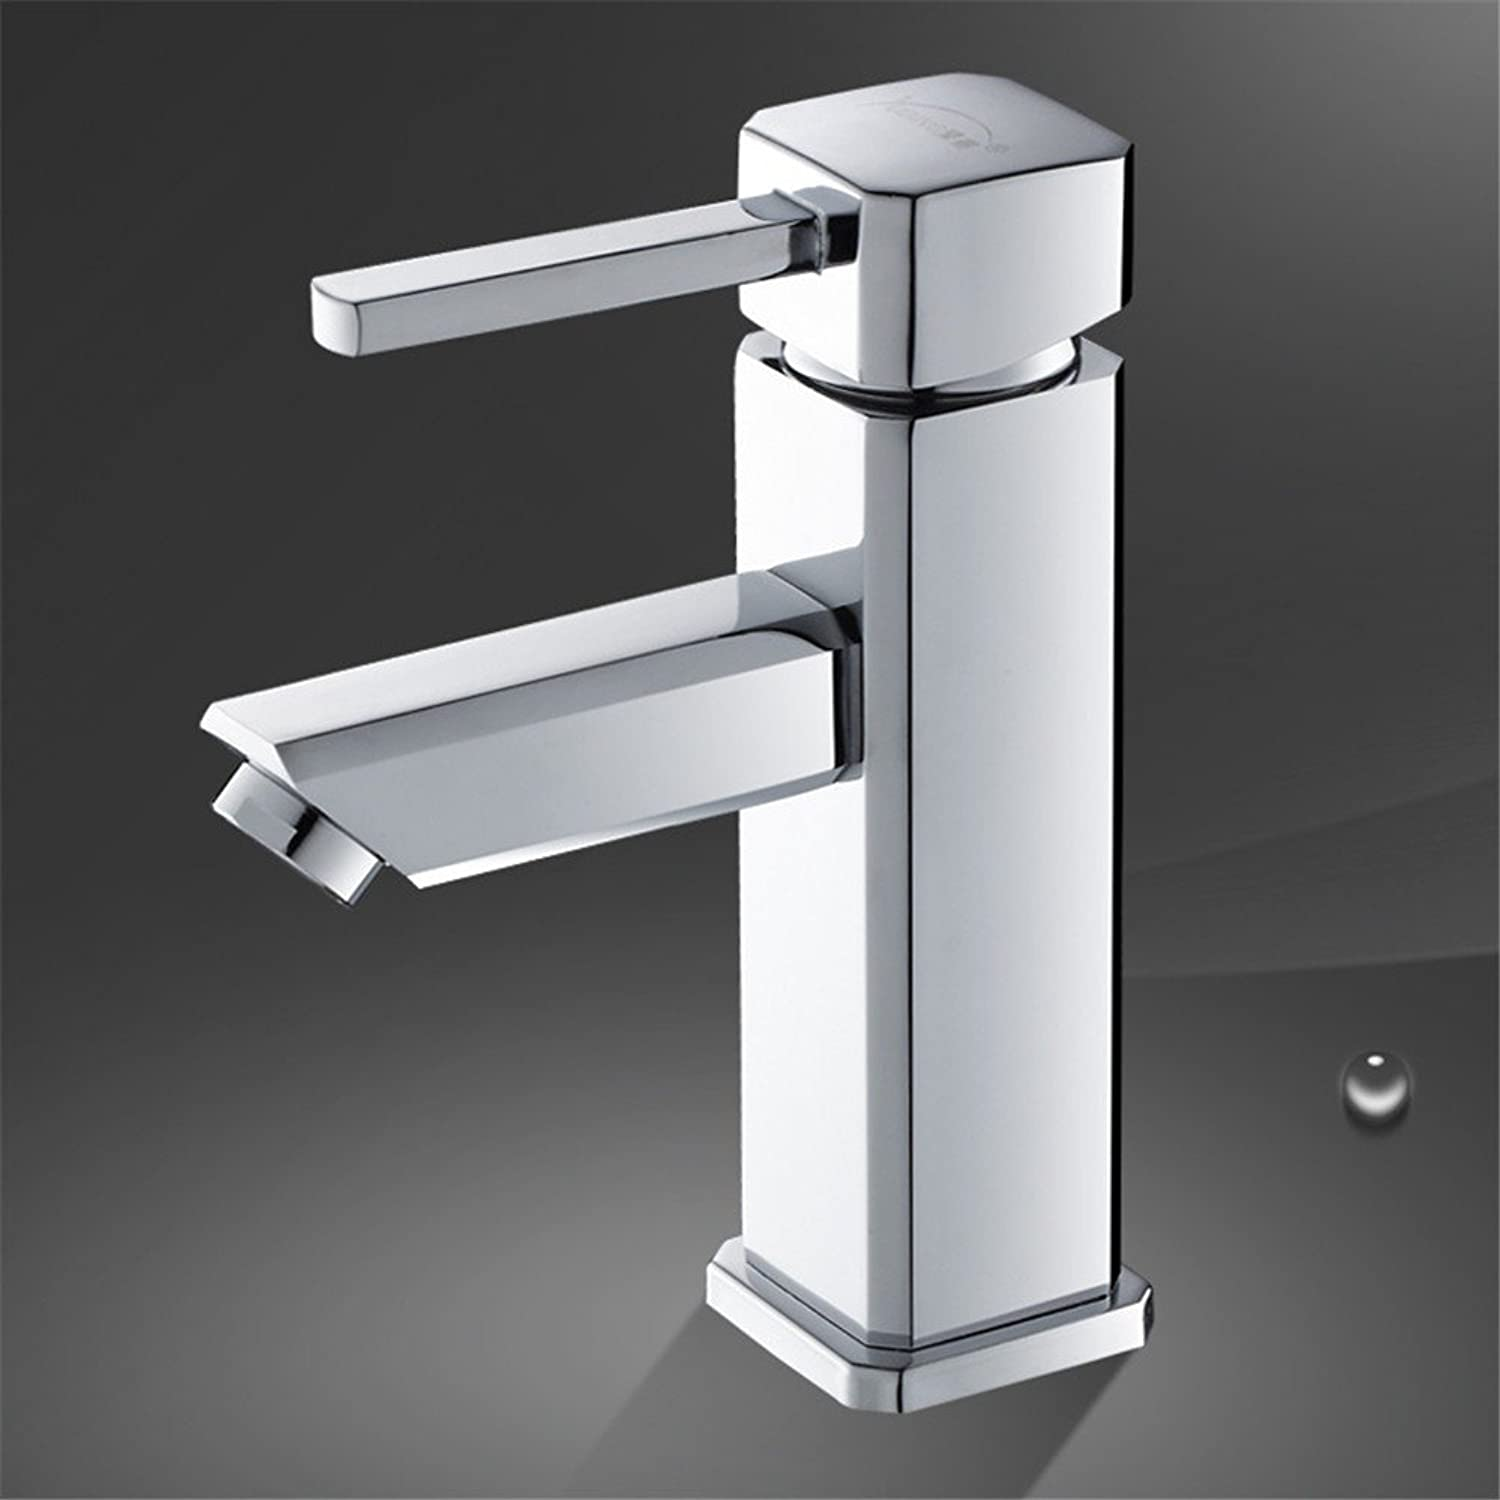 LHbox Basin Mixer Tap Bathroom Sink Faucet The bronze basin mixer SINGLE LEVER SINGLE HOLE faucet and cold water washing basin faucet basin mixer, on the console